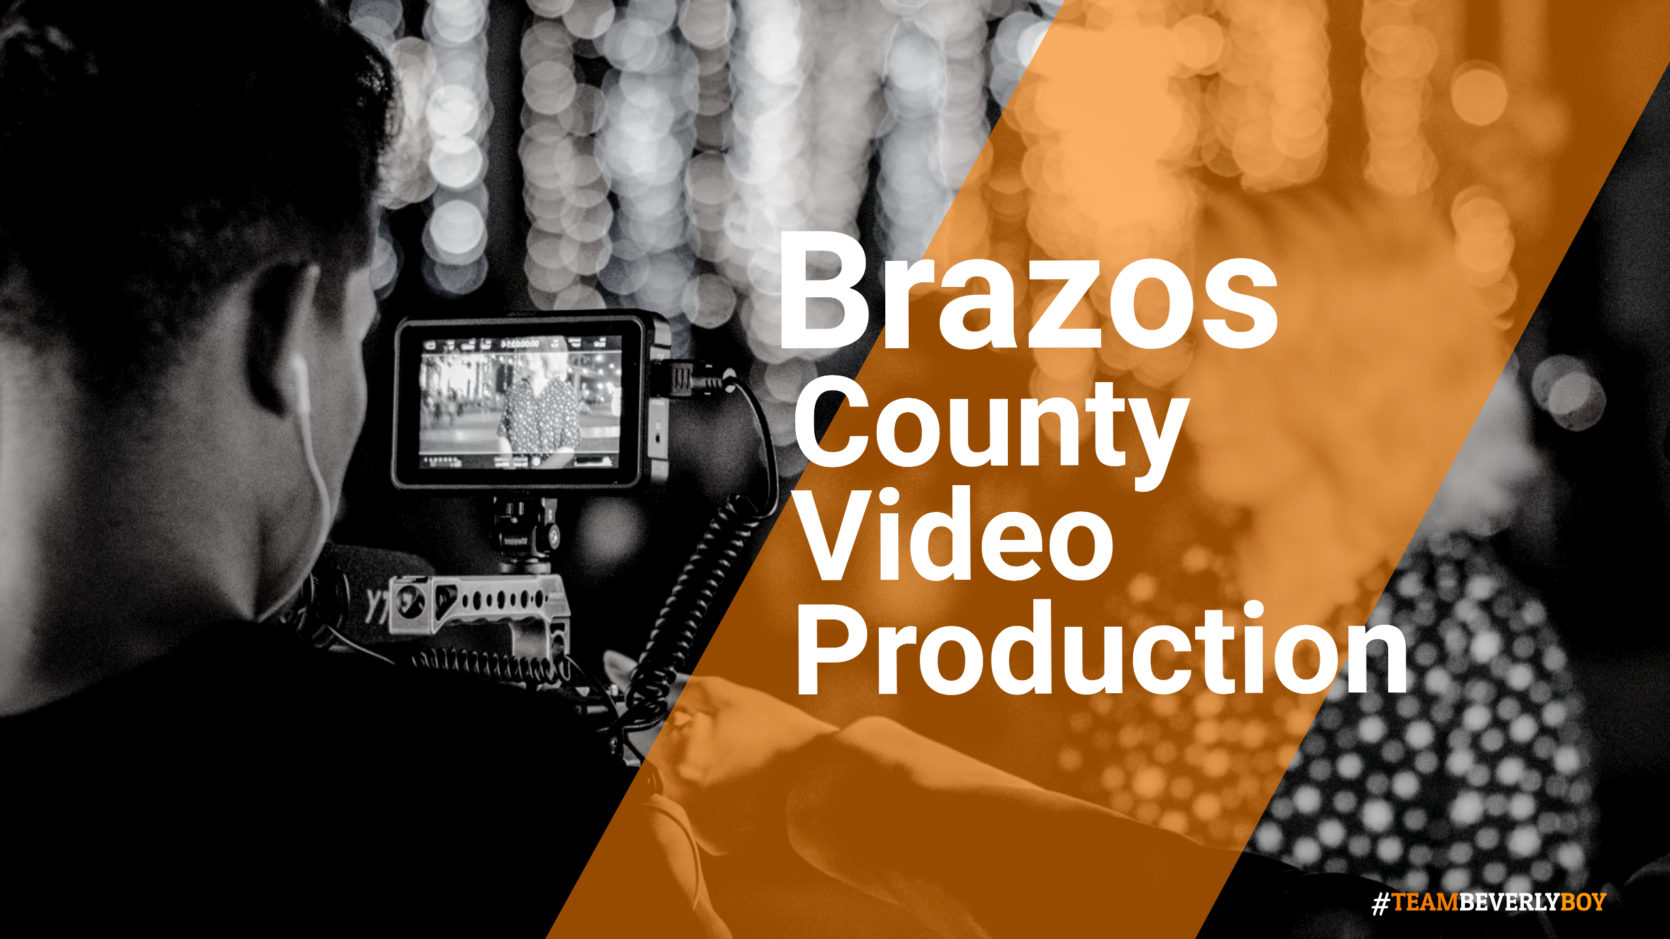 Brazos County Video Production